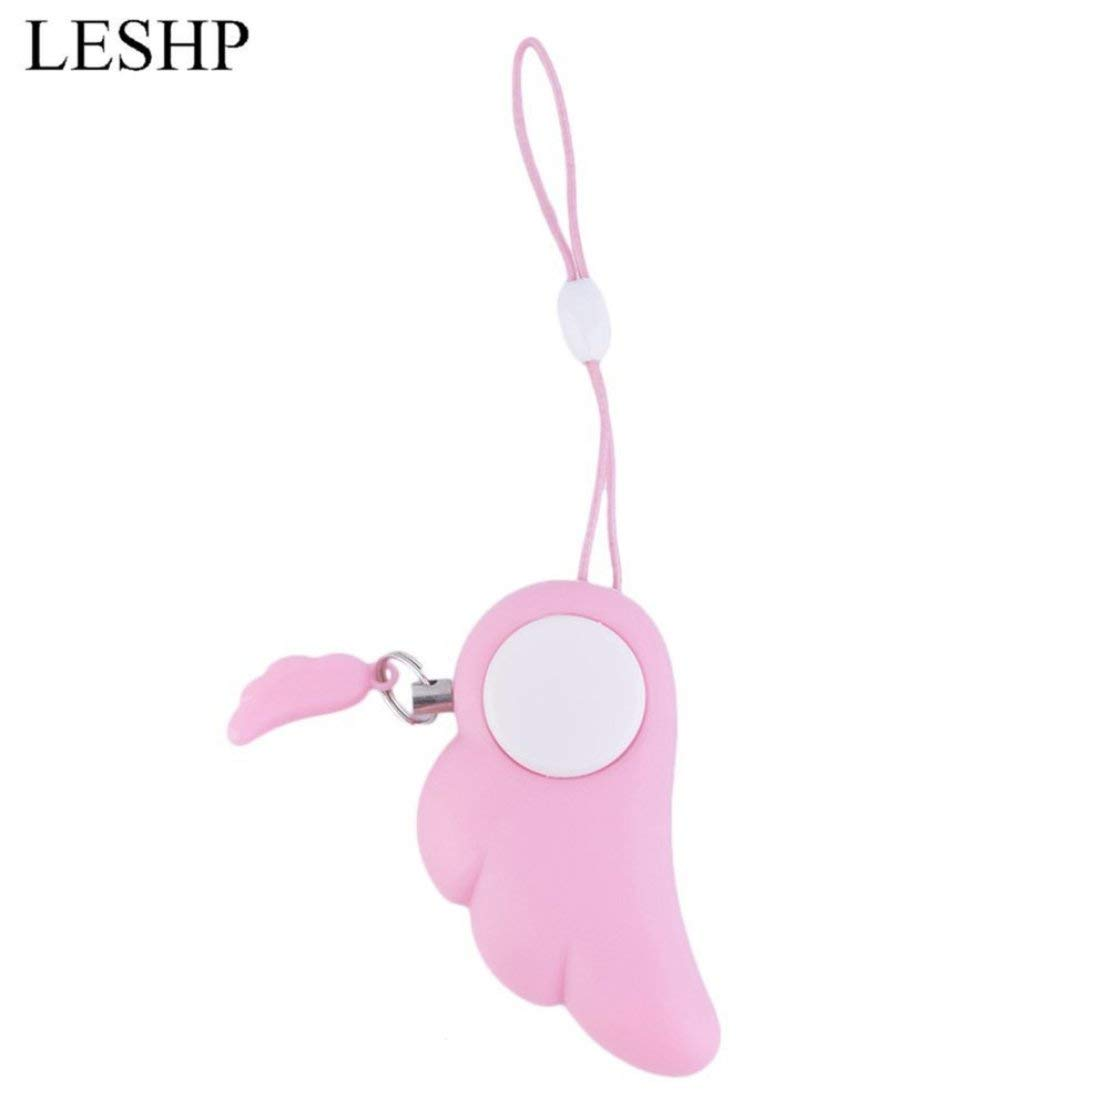 Cute Angel Wing Personal Safety Anti Rape Attack Alarm Panic Protection Tool Kids Children Self Defense Supplies Gwendoll